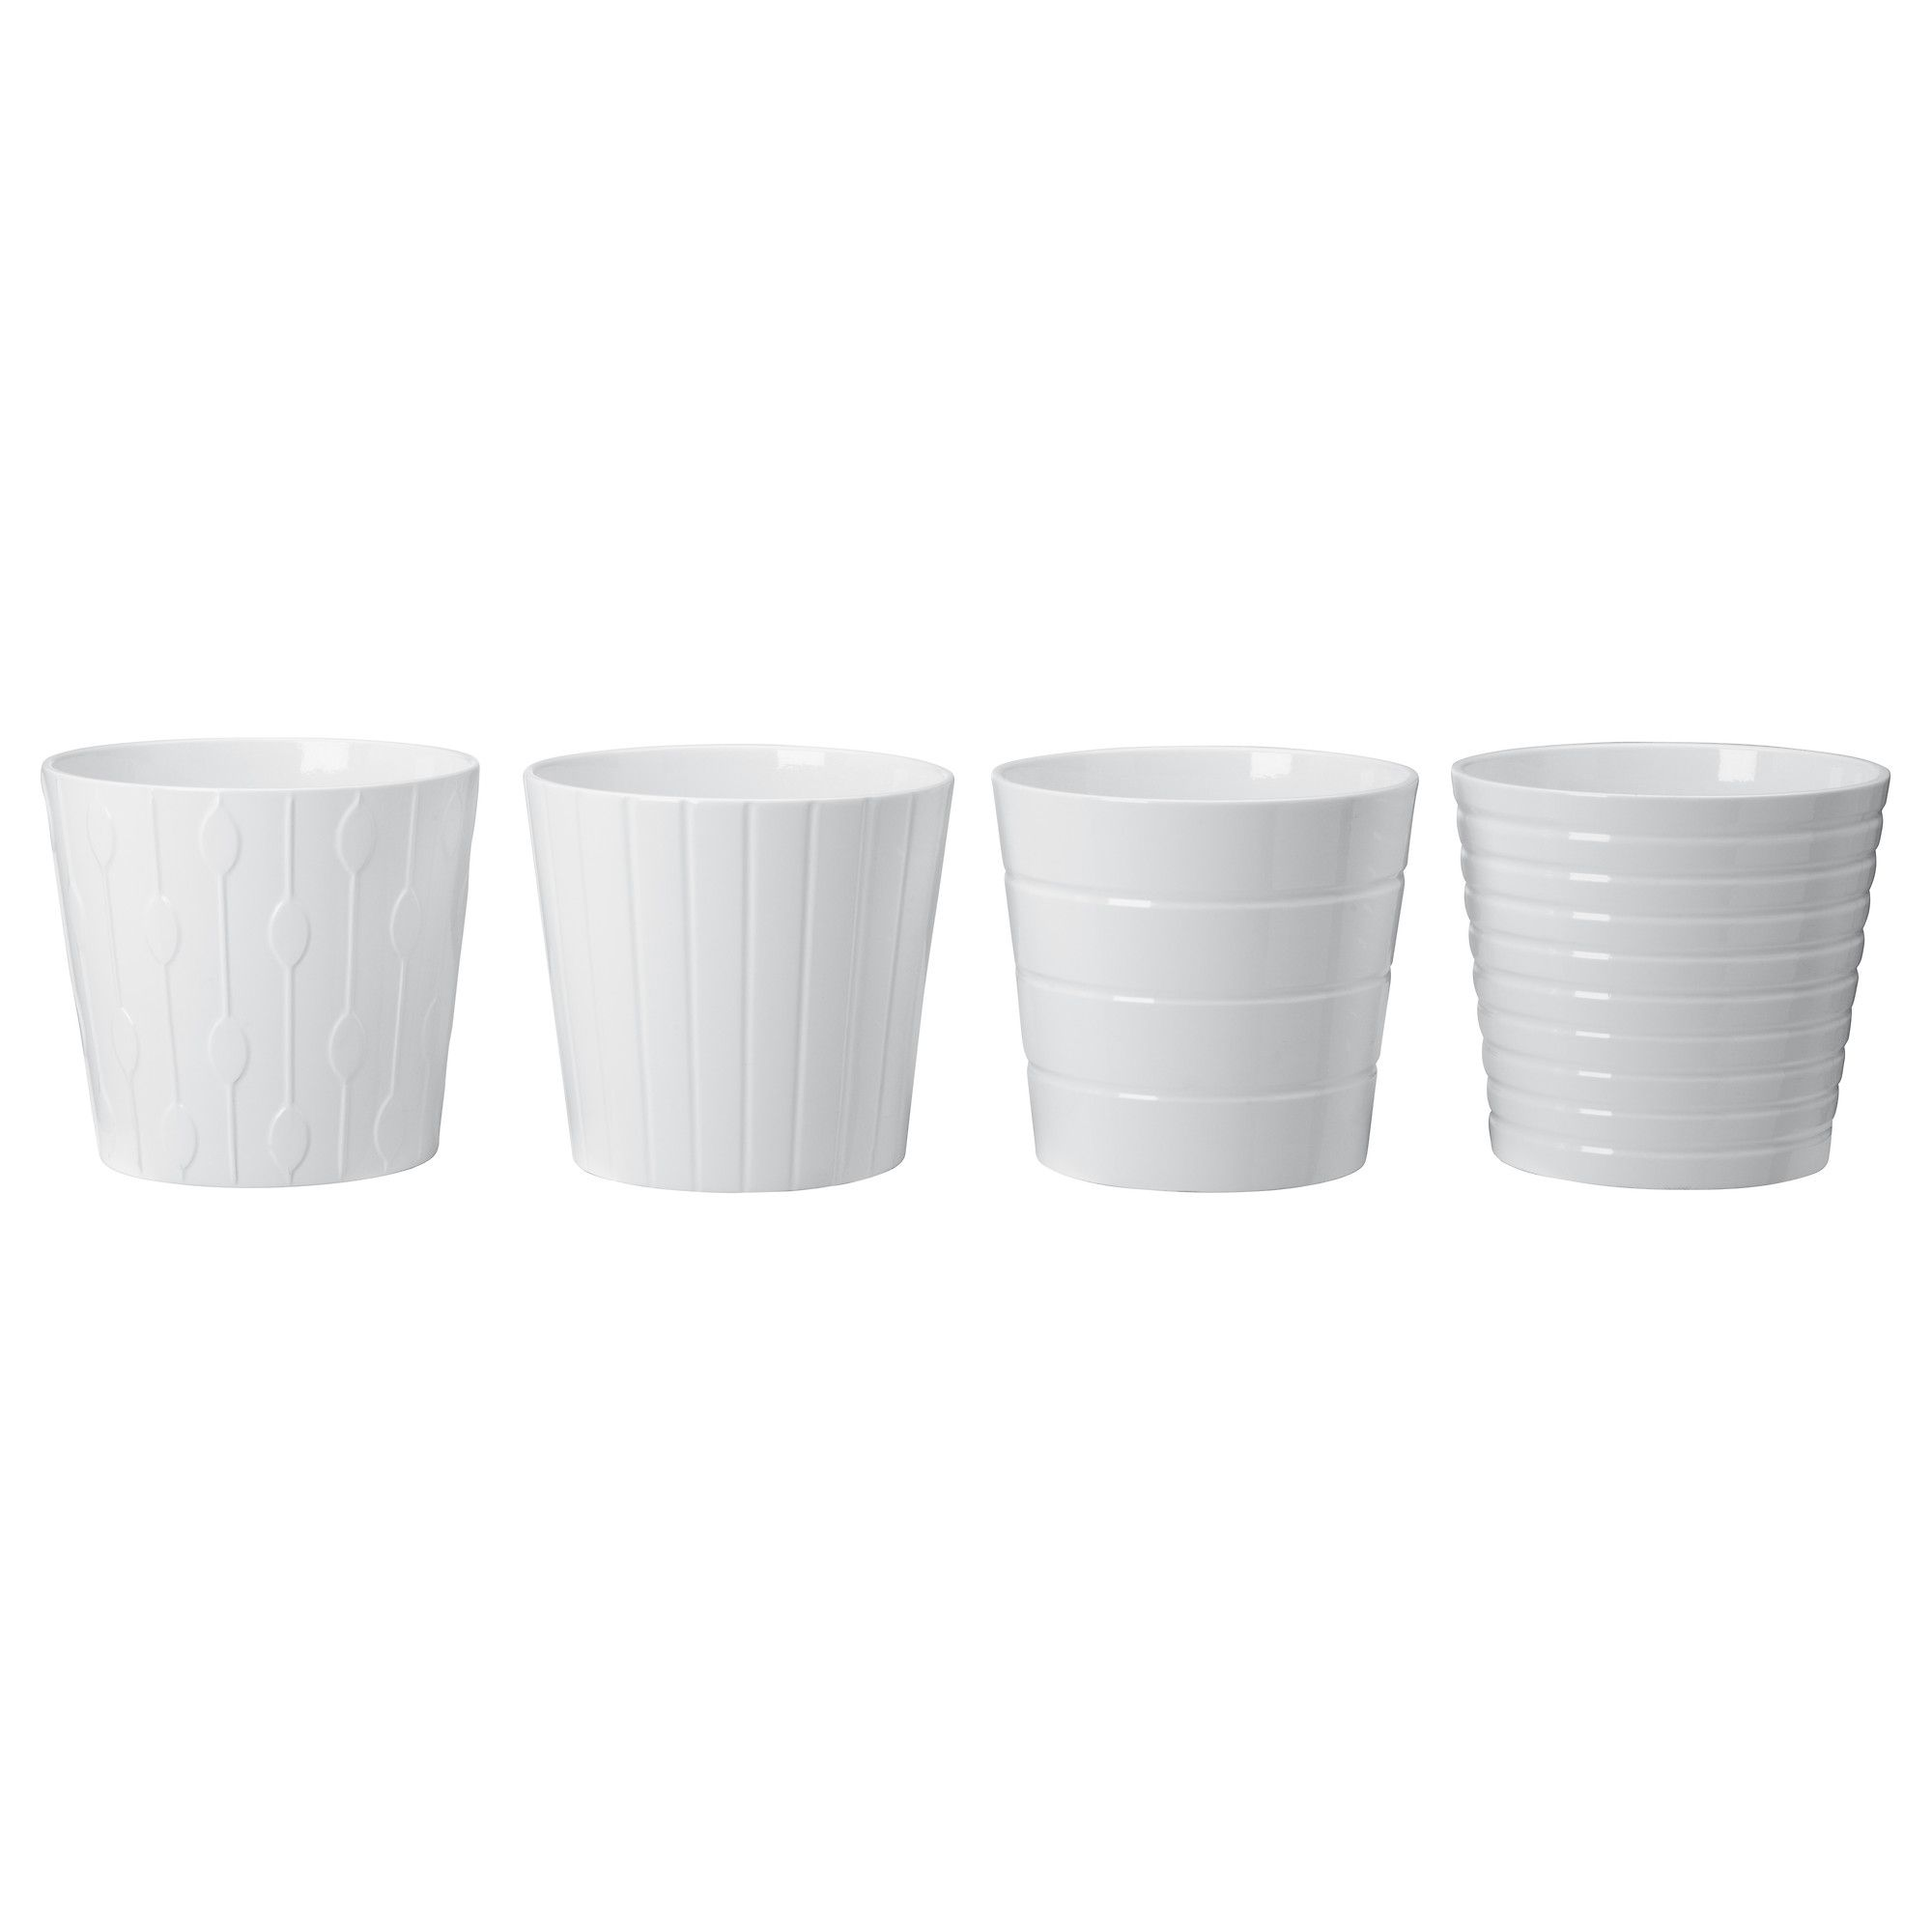 kardemumma plant pots from ikea obsessed with these